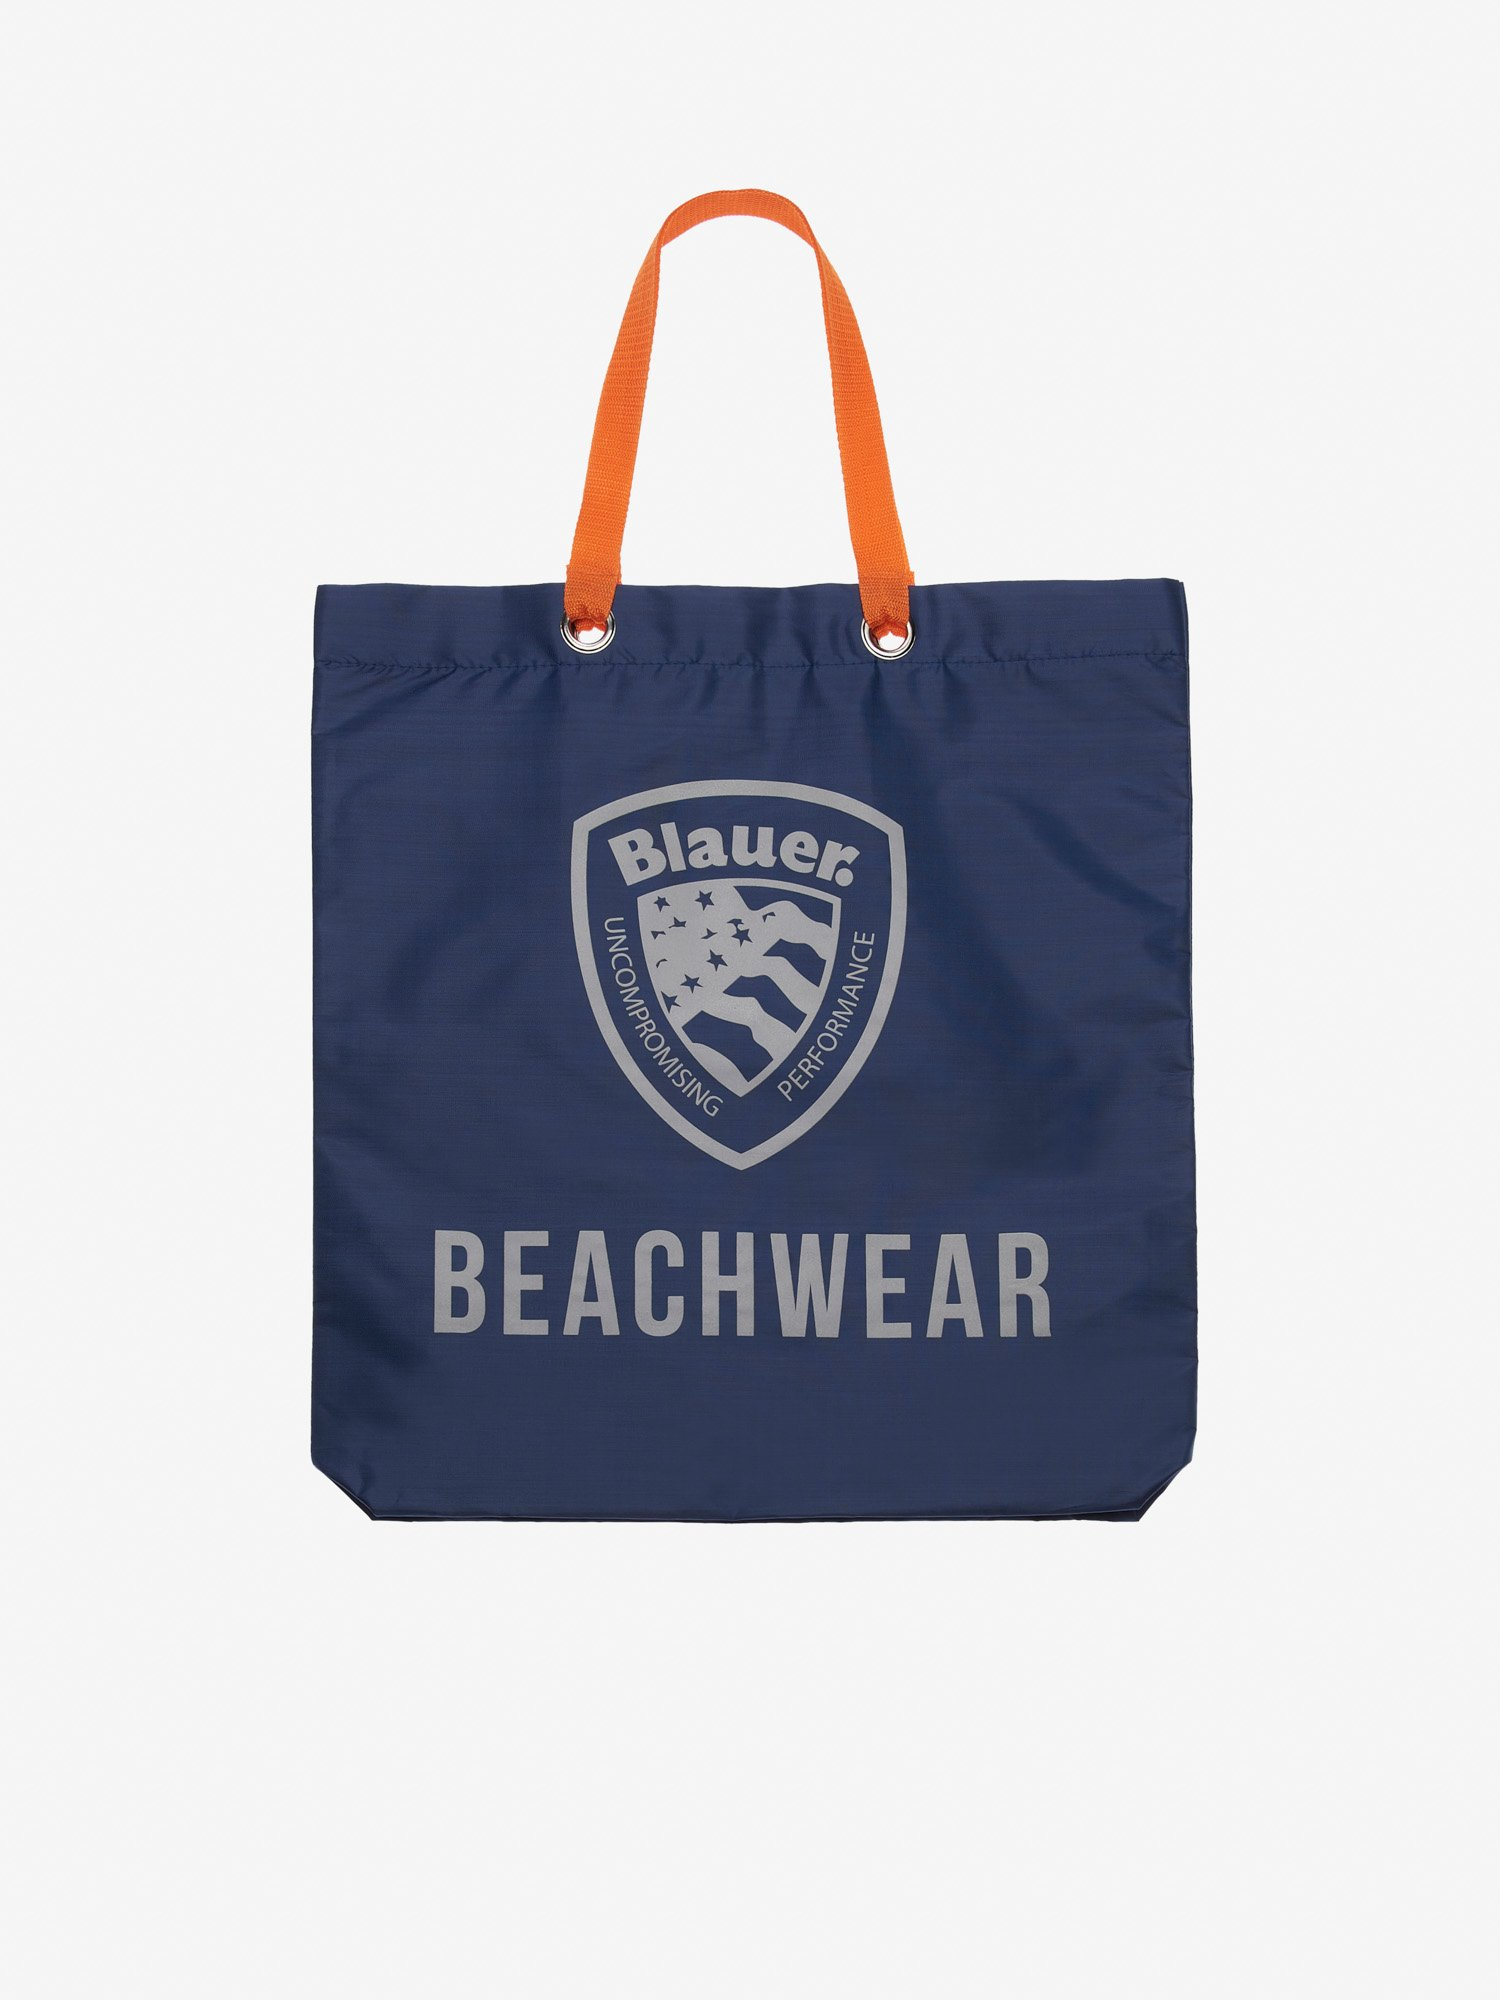 Blauer - BEACH BAG - Blue Ink - Blauer